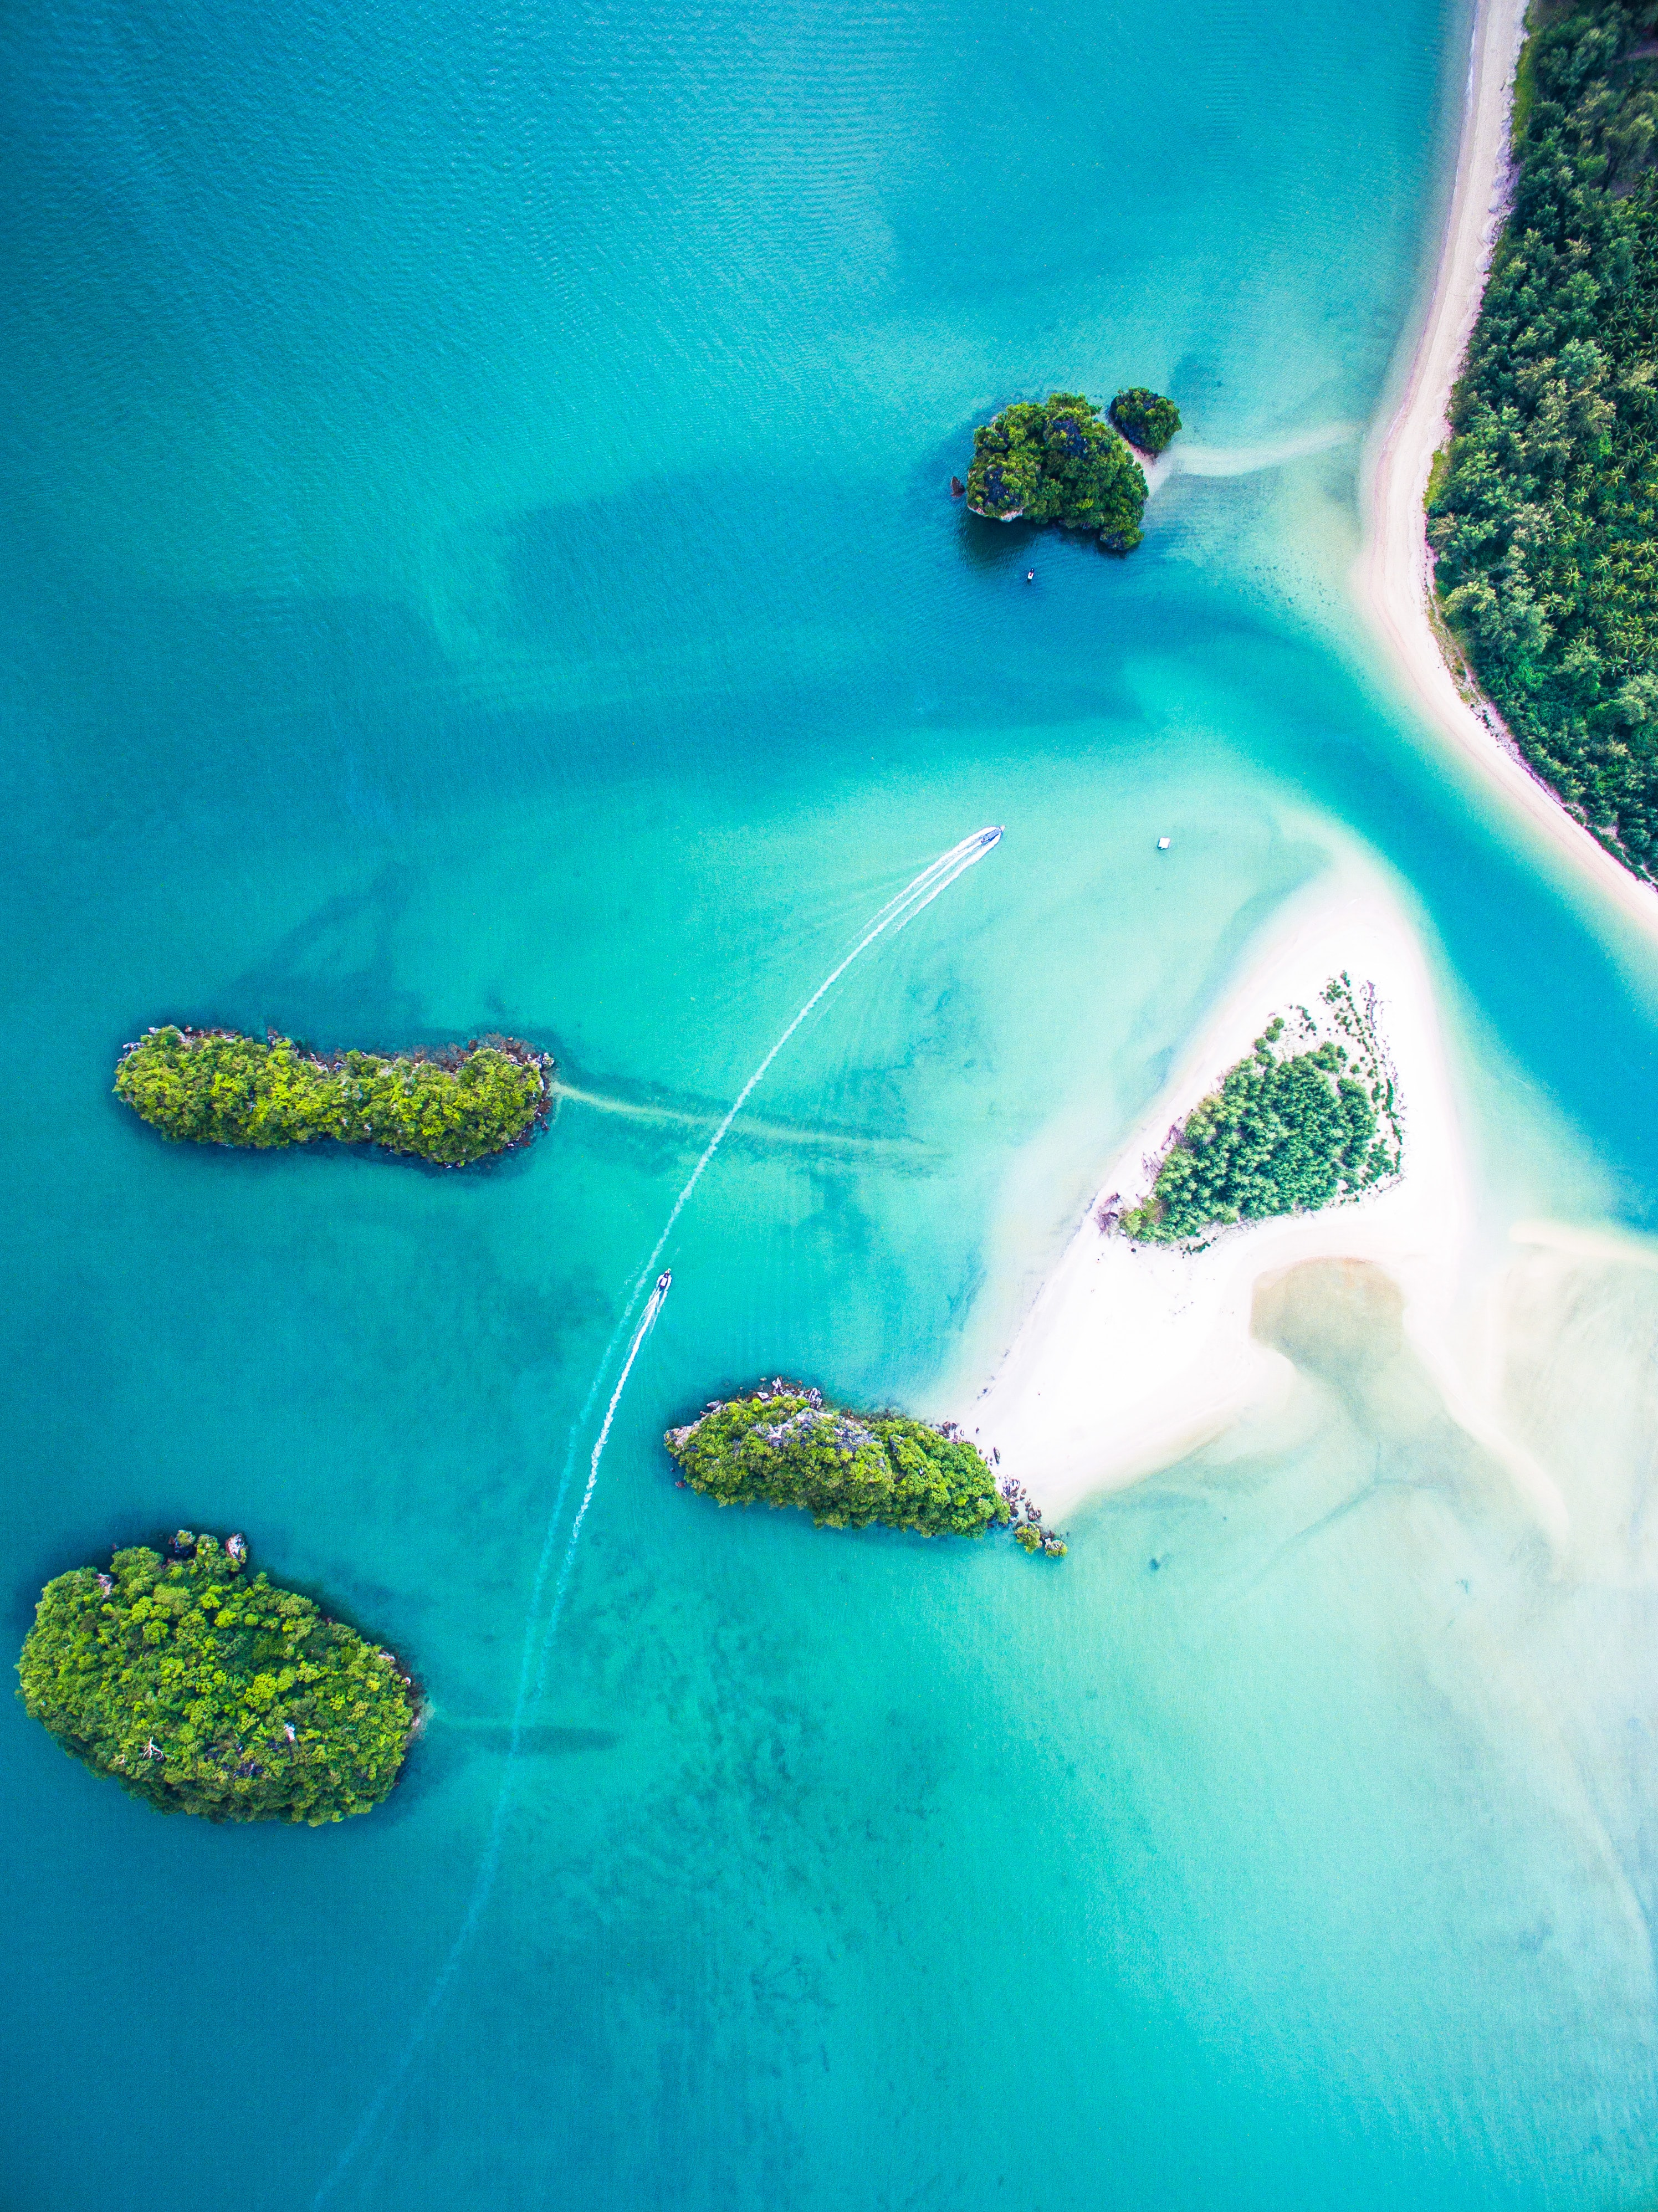 An aerial shot of two motorboats speeding on clear water between small tropical islands